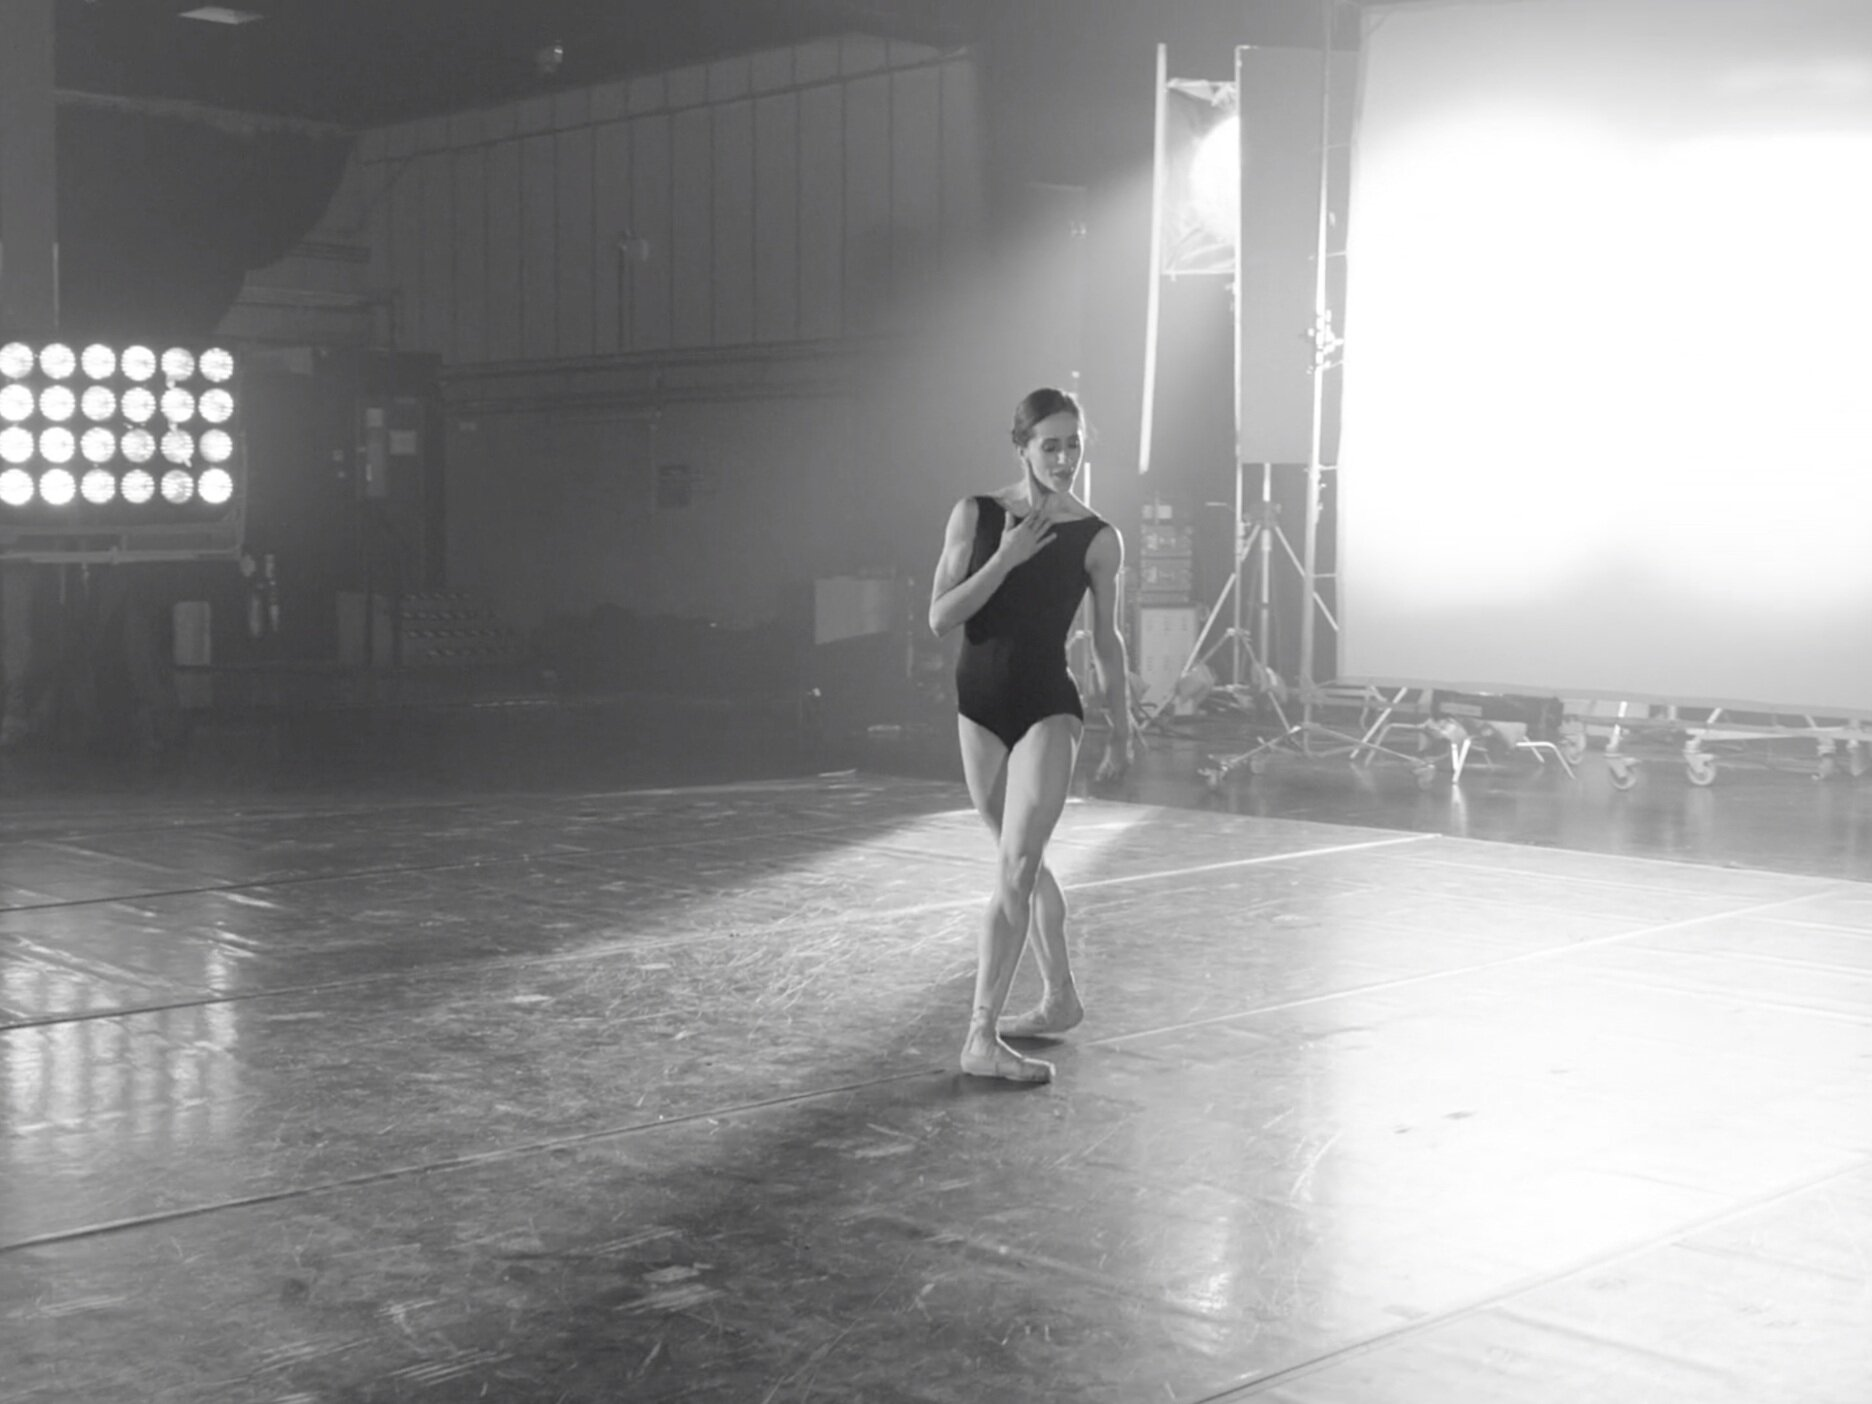 Nela - A strikingly intimate study of the great classical ballerina Marianela Nuñez as she dances to Nina Simone, choreographed by Will Tuckett.Run time: 3 minutes 26 secondsDirector: Andrew Margetson